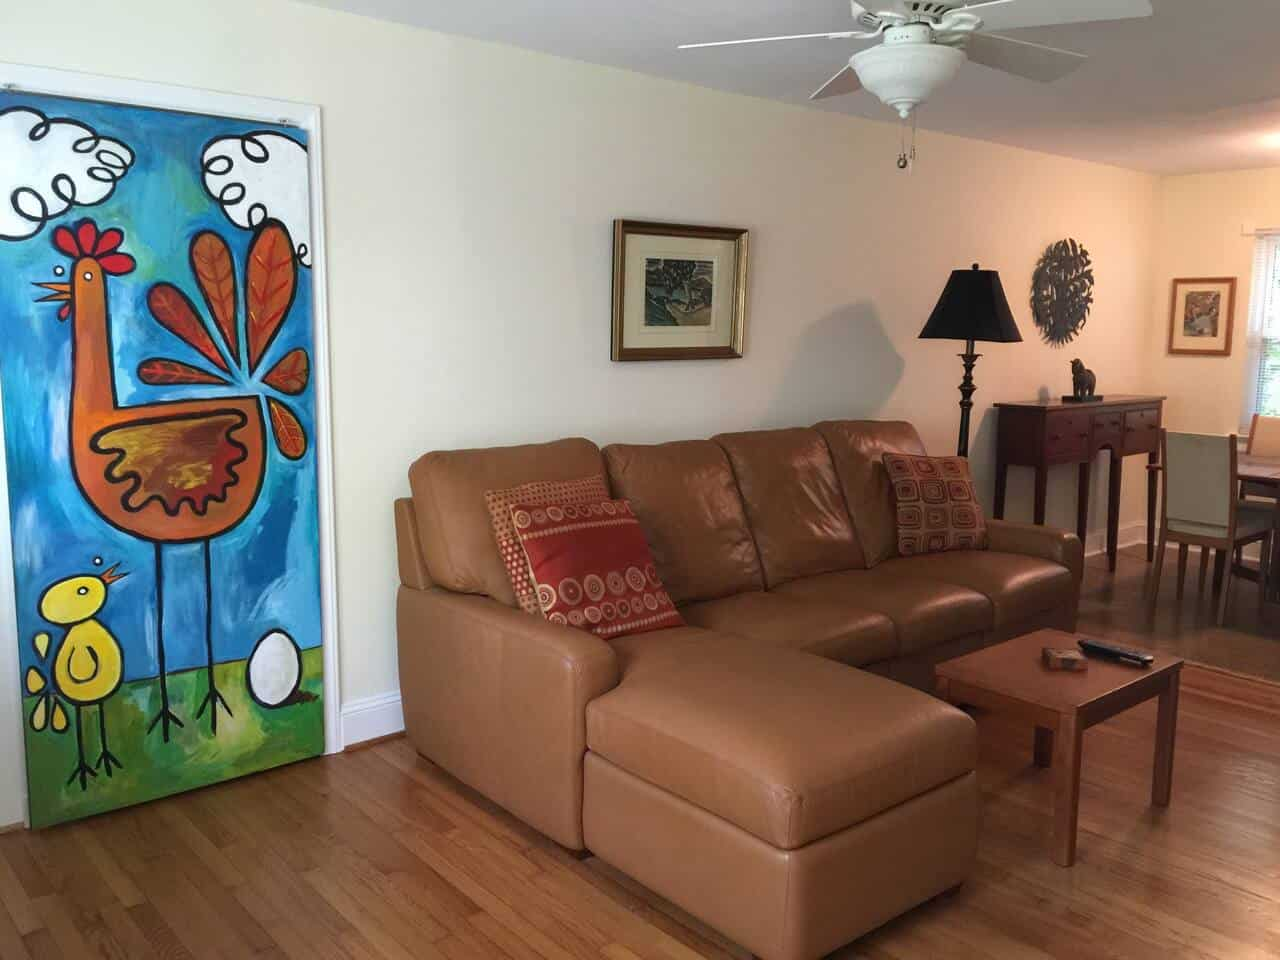 Image of Airbnb rental in Raleigh North Carolina